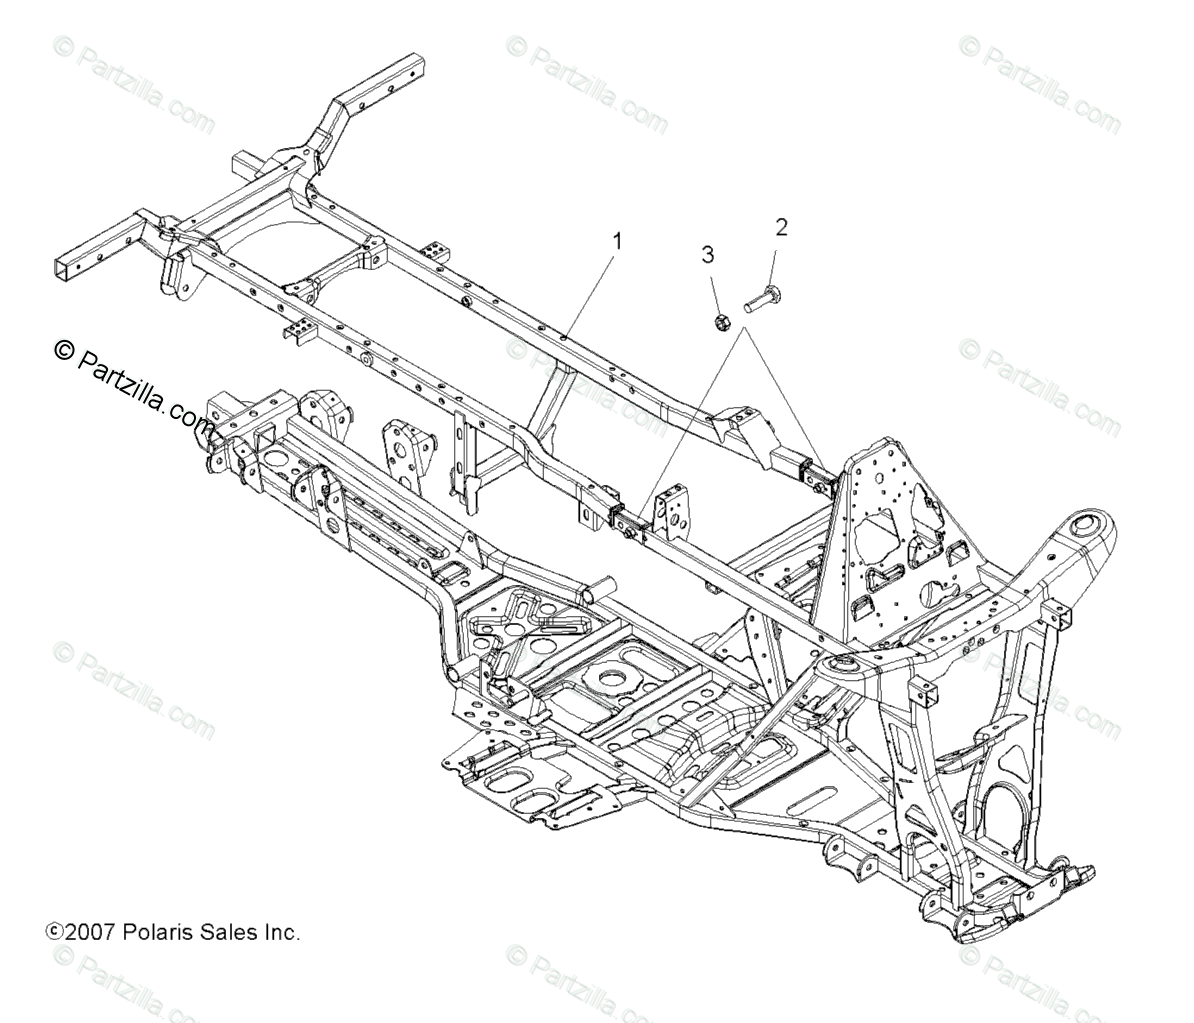 Polaris ATV 2009 OEM Parts Diagram for Chassis Frame